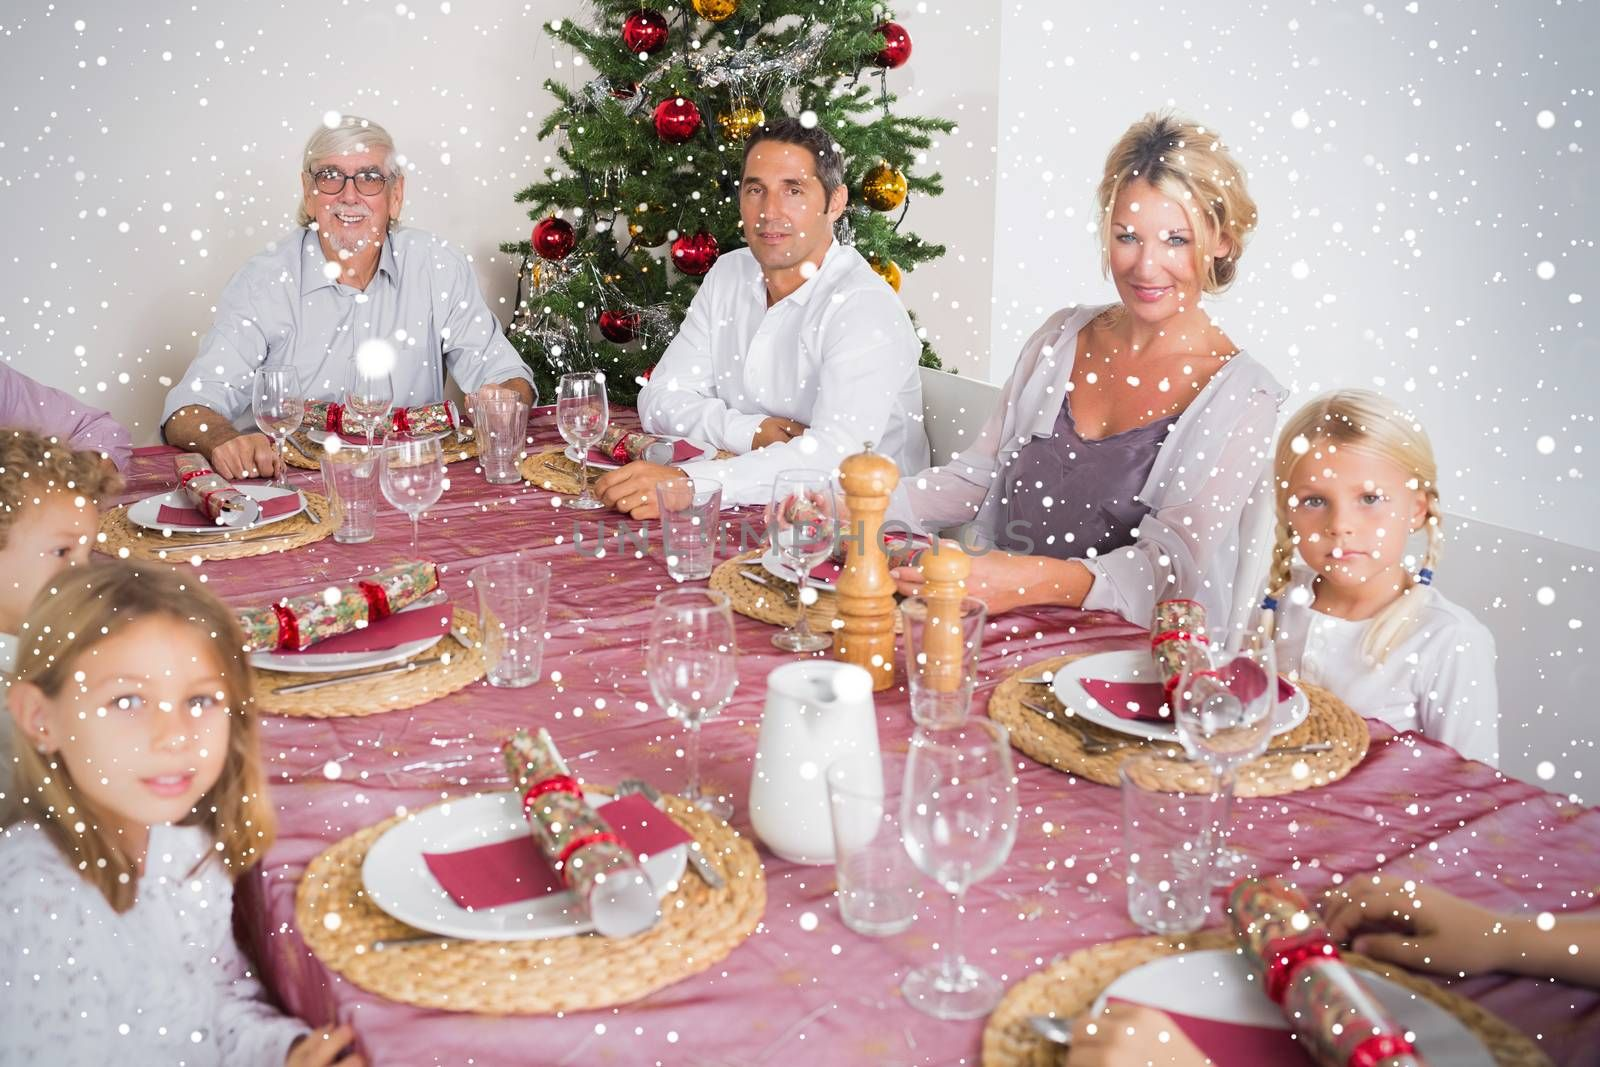 Composite image of Smiling family at the dinner table against snow falling